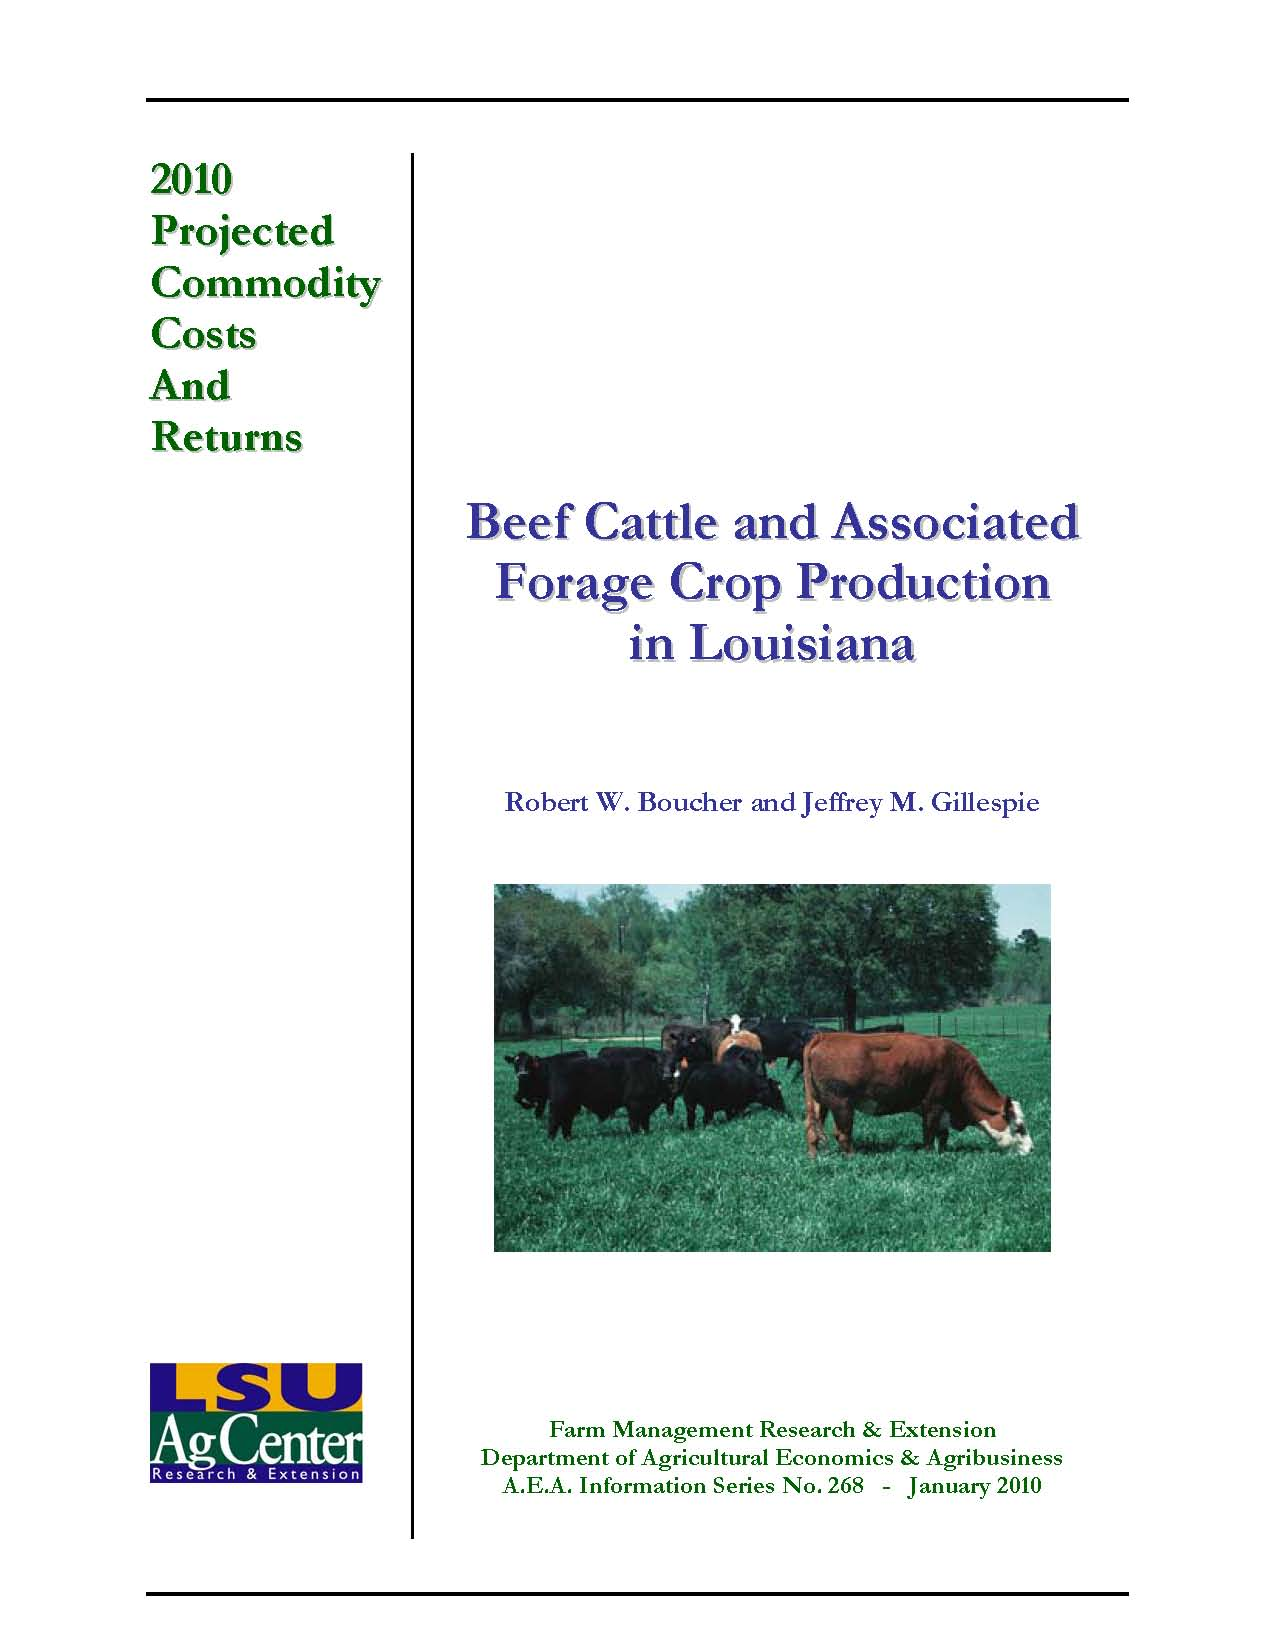 Projected Costs and Returns for Beef Cattle and Associated Forage Crop Production in Louisiana 2010.